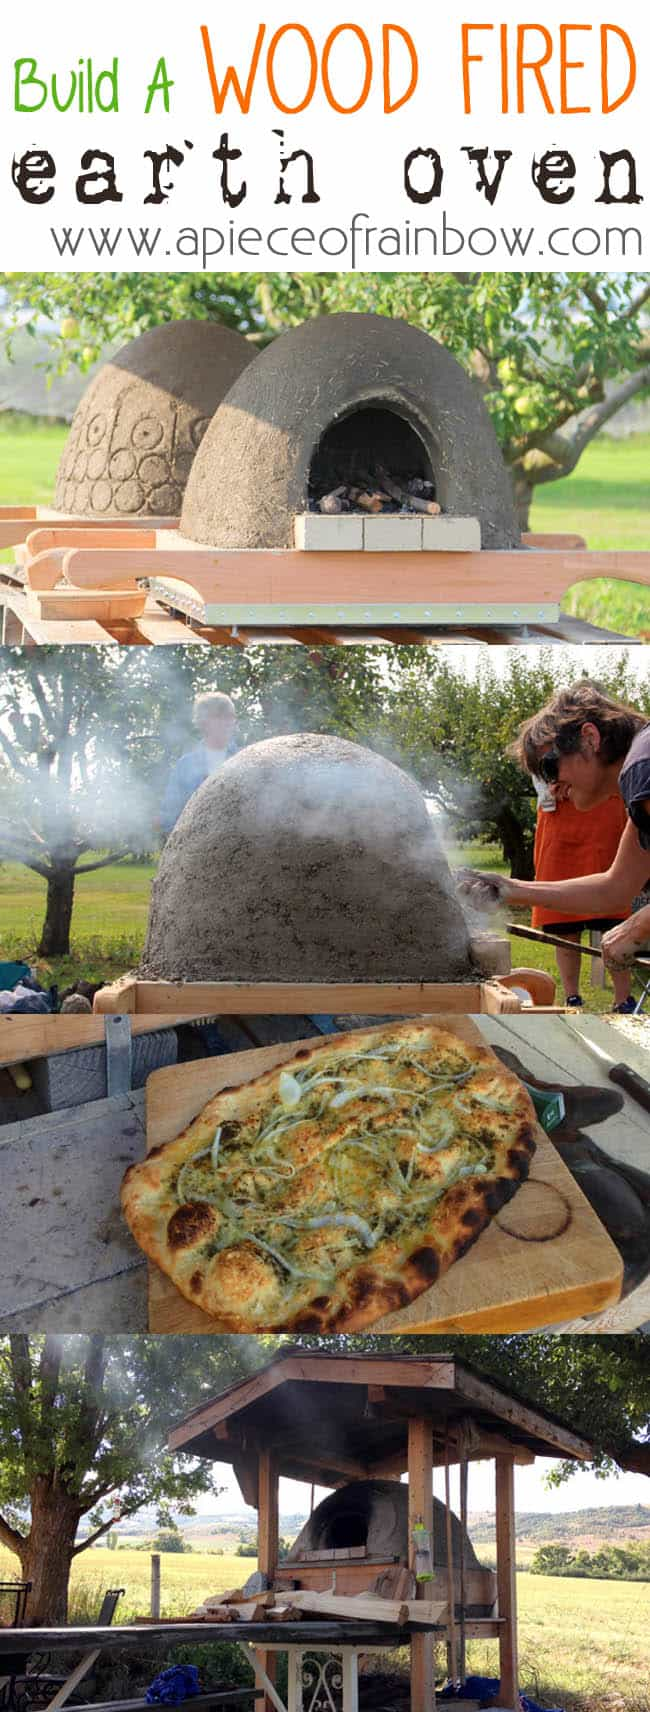 Build a wood fired earth oven with readily available materials, and make pizzas, breads, cookies! | a piece of rainbow blog